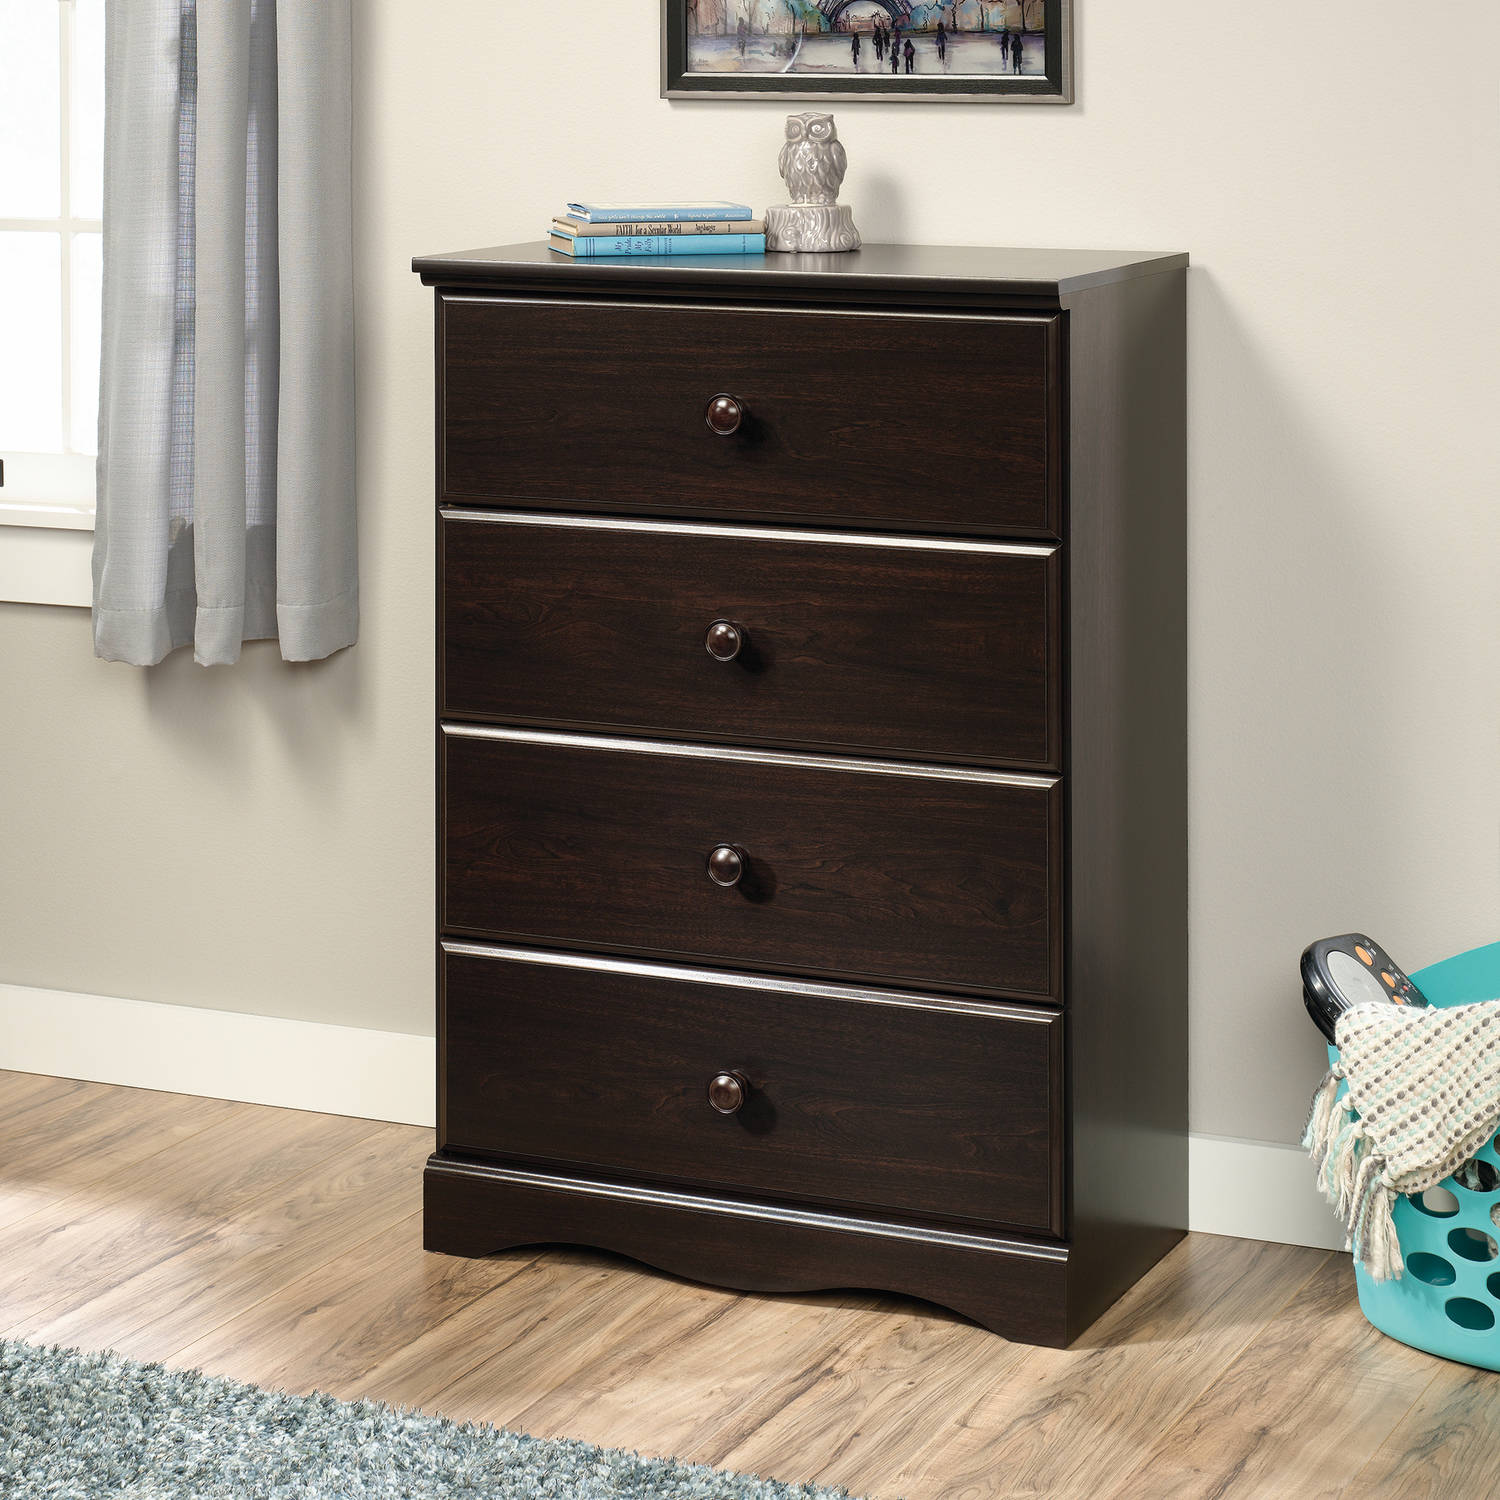 four style dr mahogany century treasure woodstock dresser mid exclusive drawer house modern